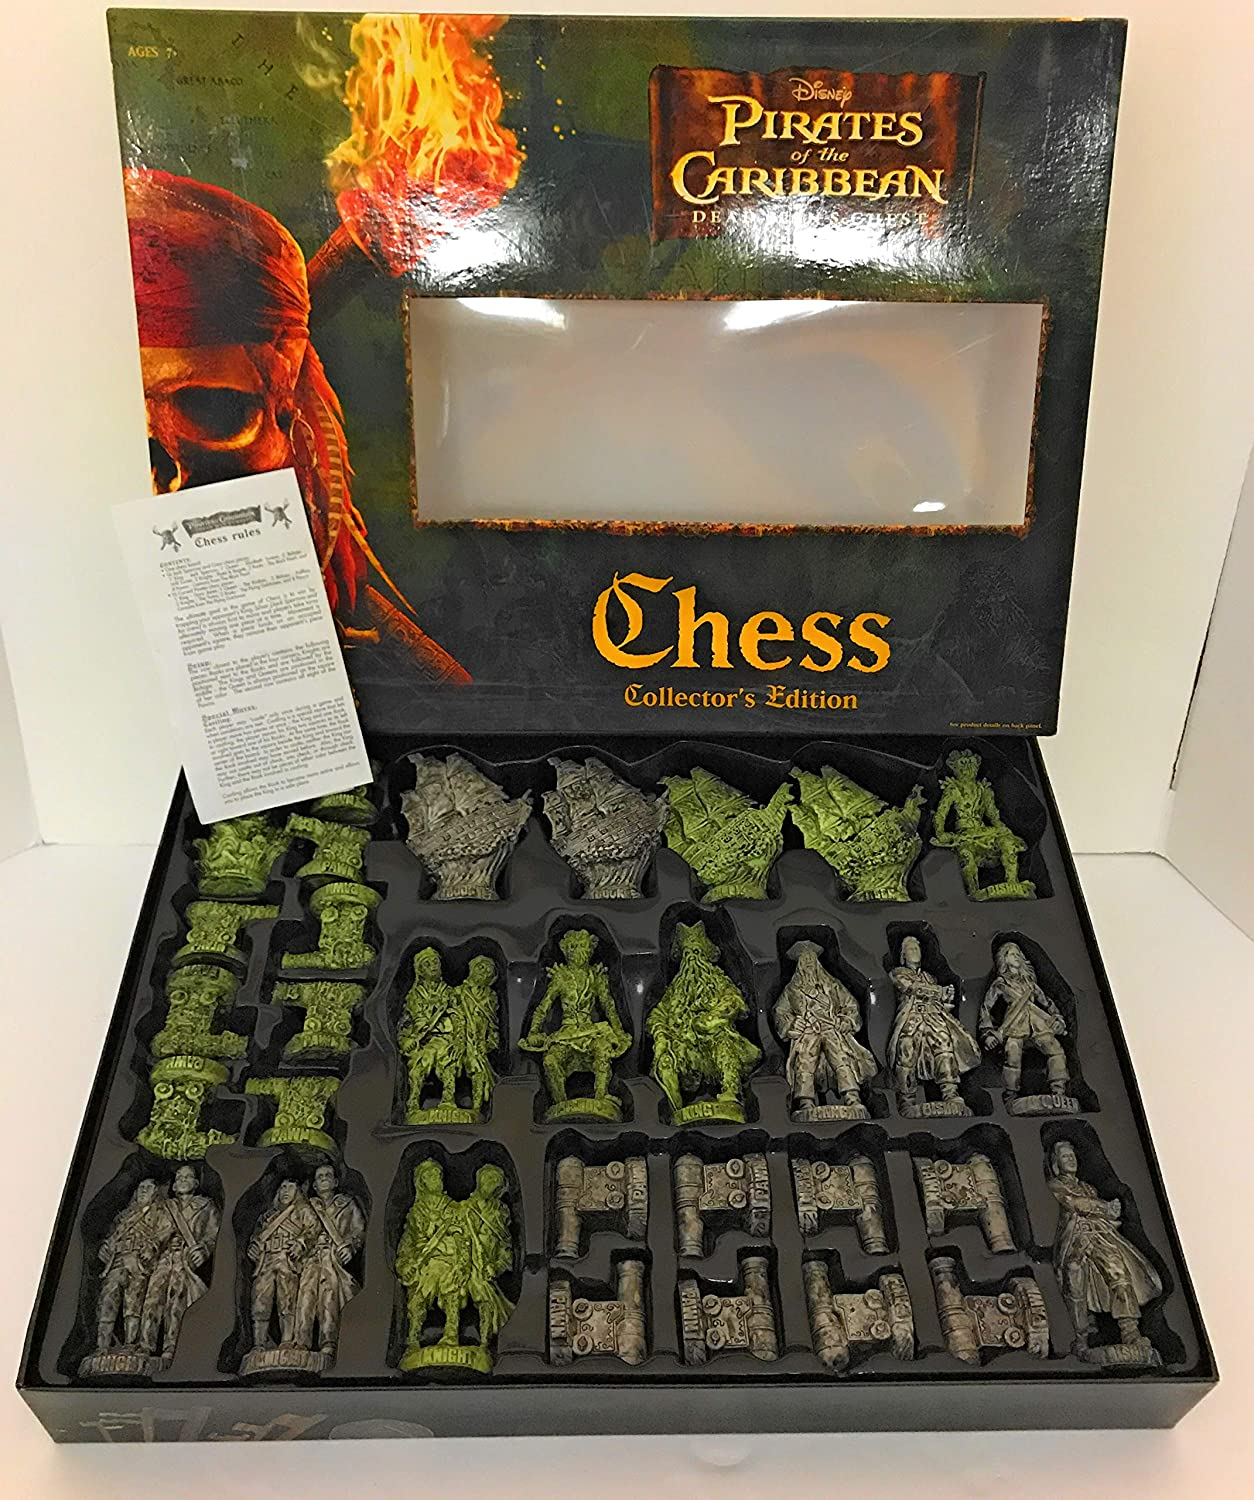 Pirates of the Caribbean-Dead Mans Chest-Chess Game-Collectors Edition by Pirates of the Caribbean